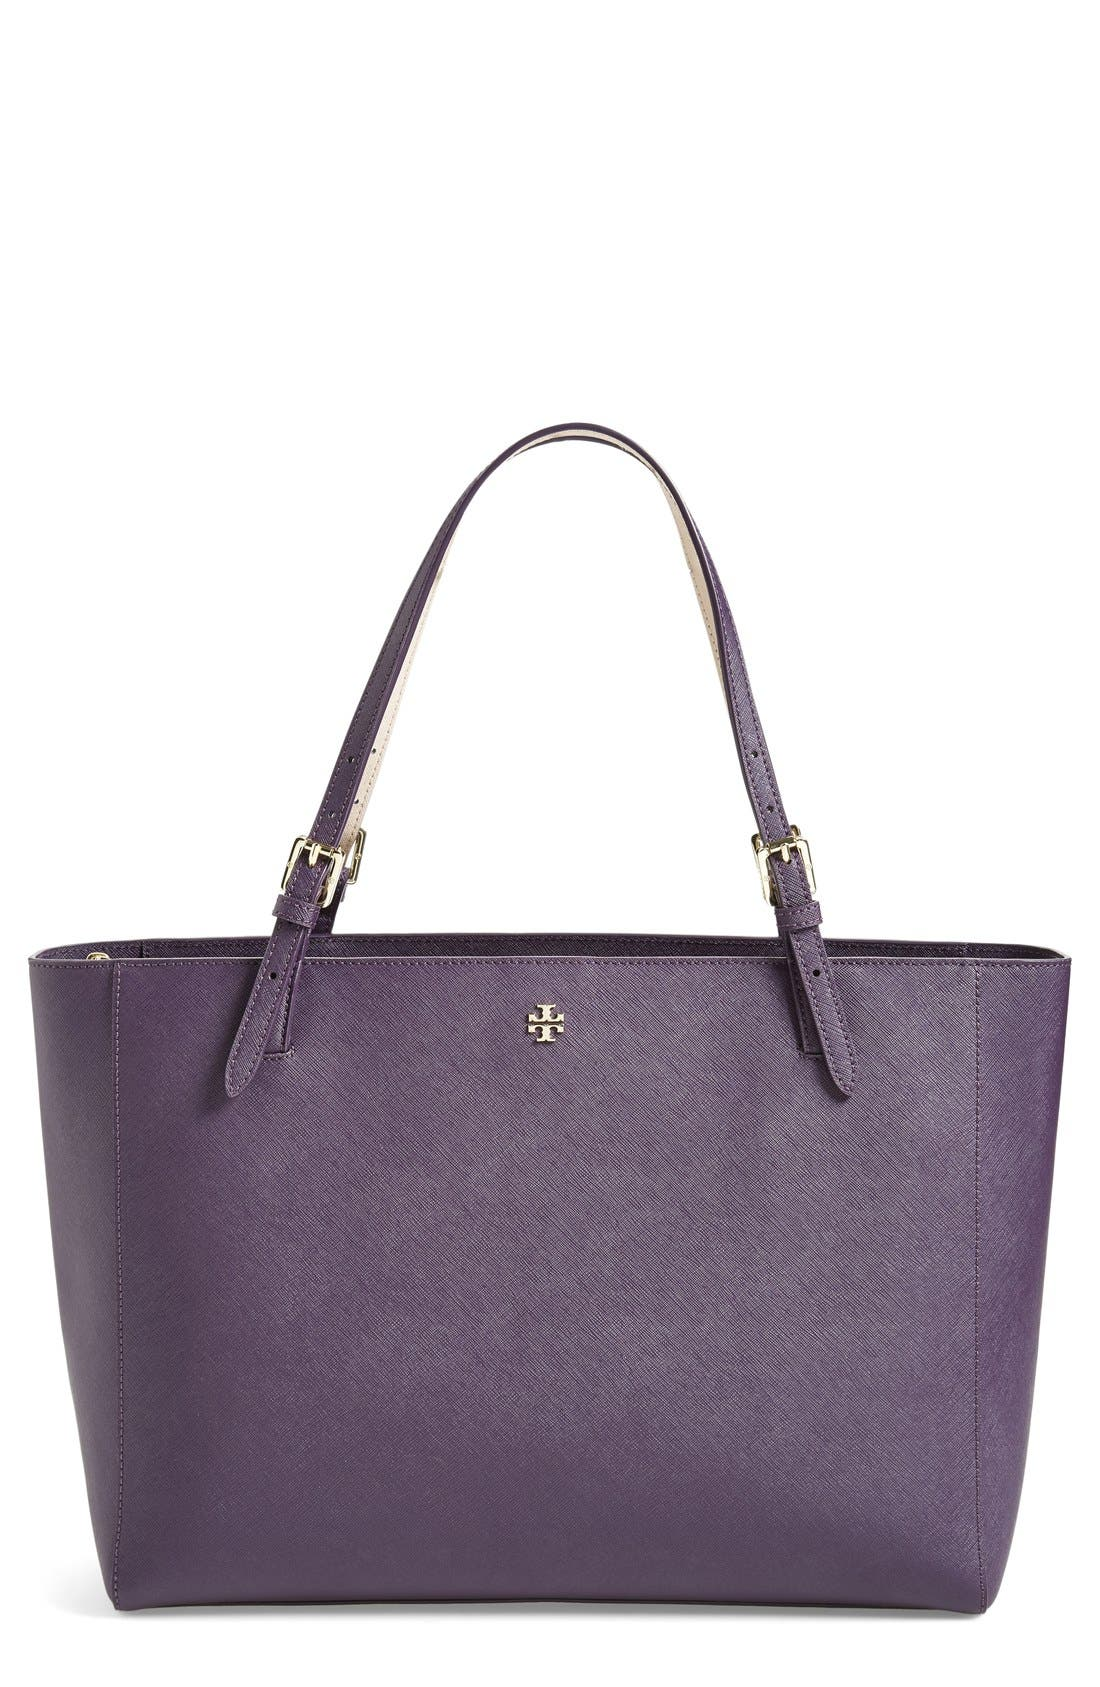 'York' Buckle Tote,                             Main thumbnail 10, color,